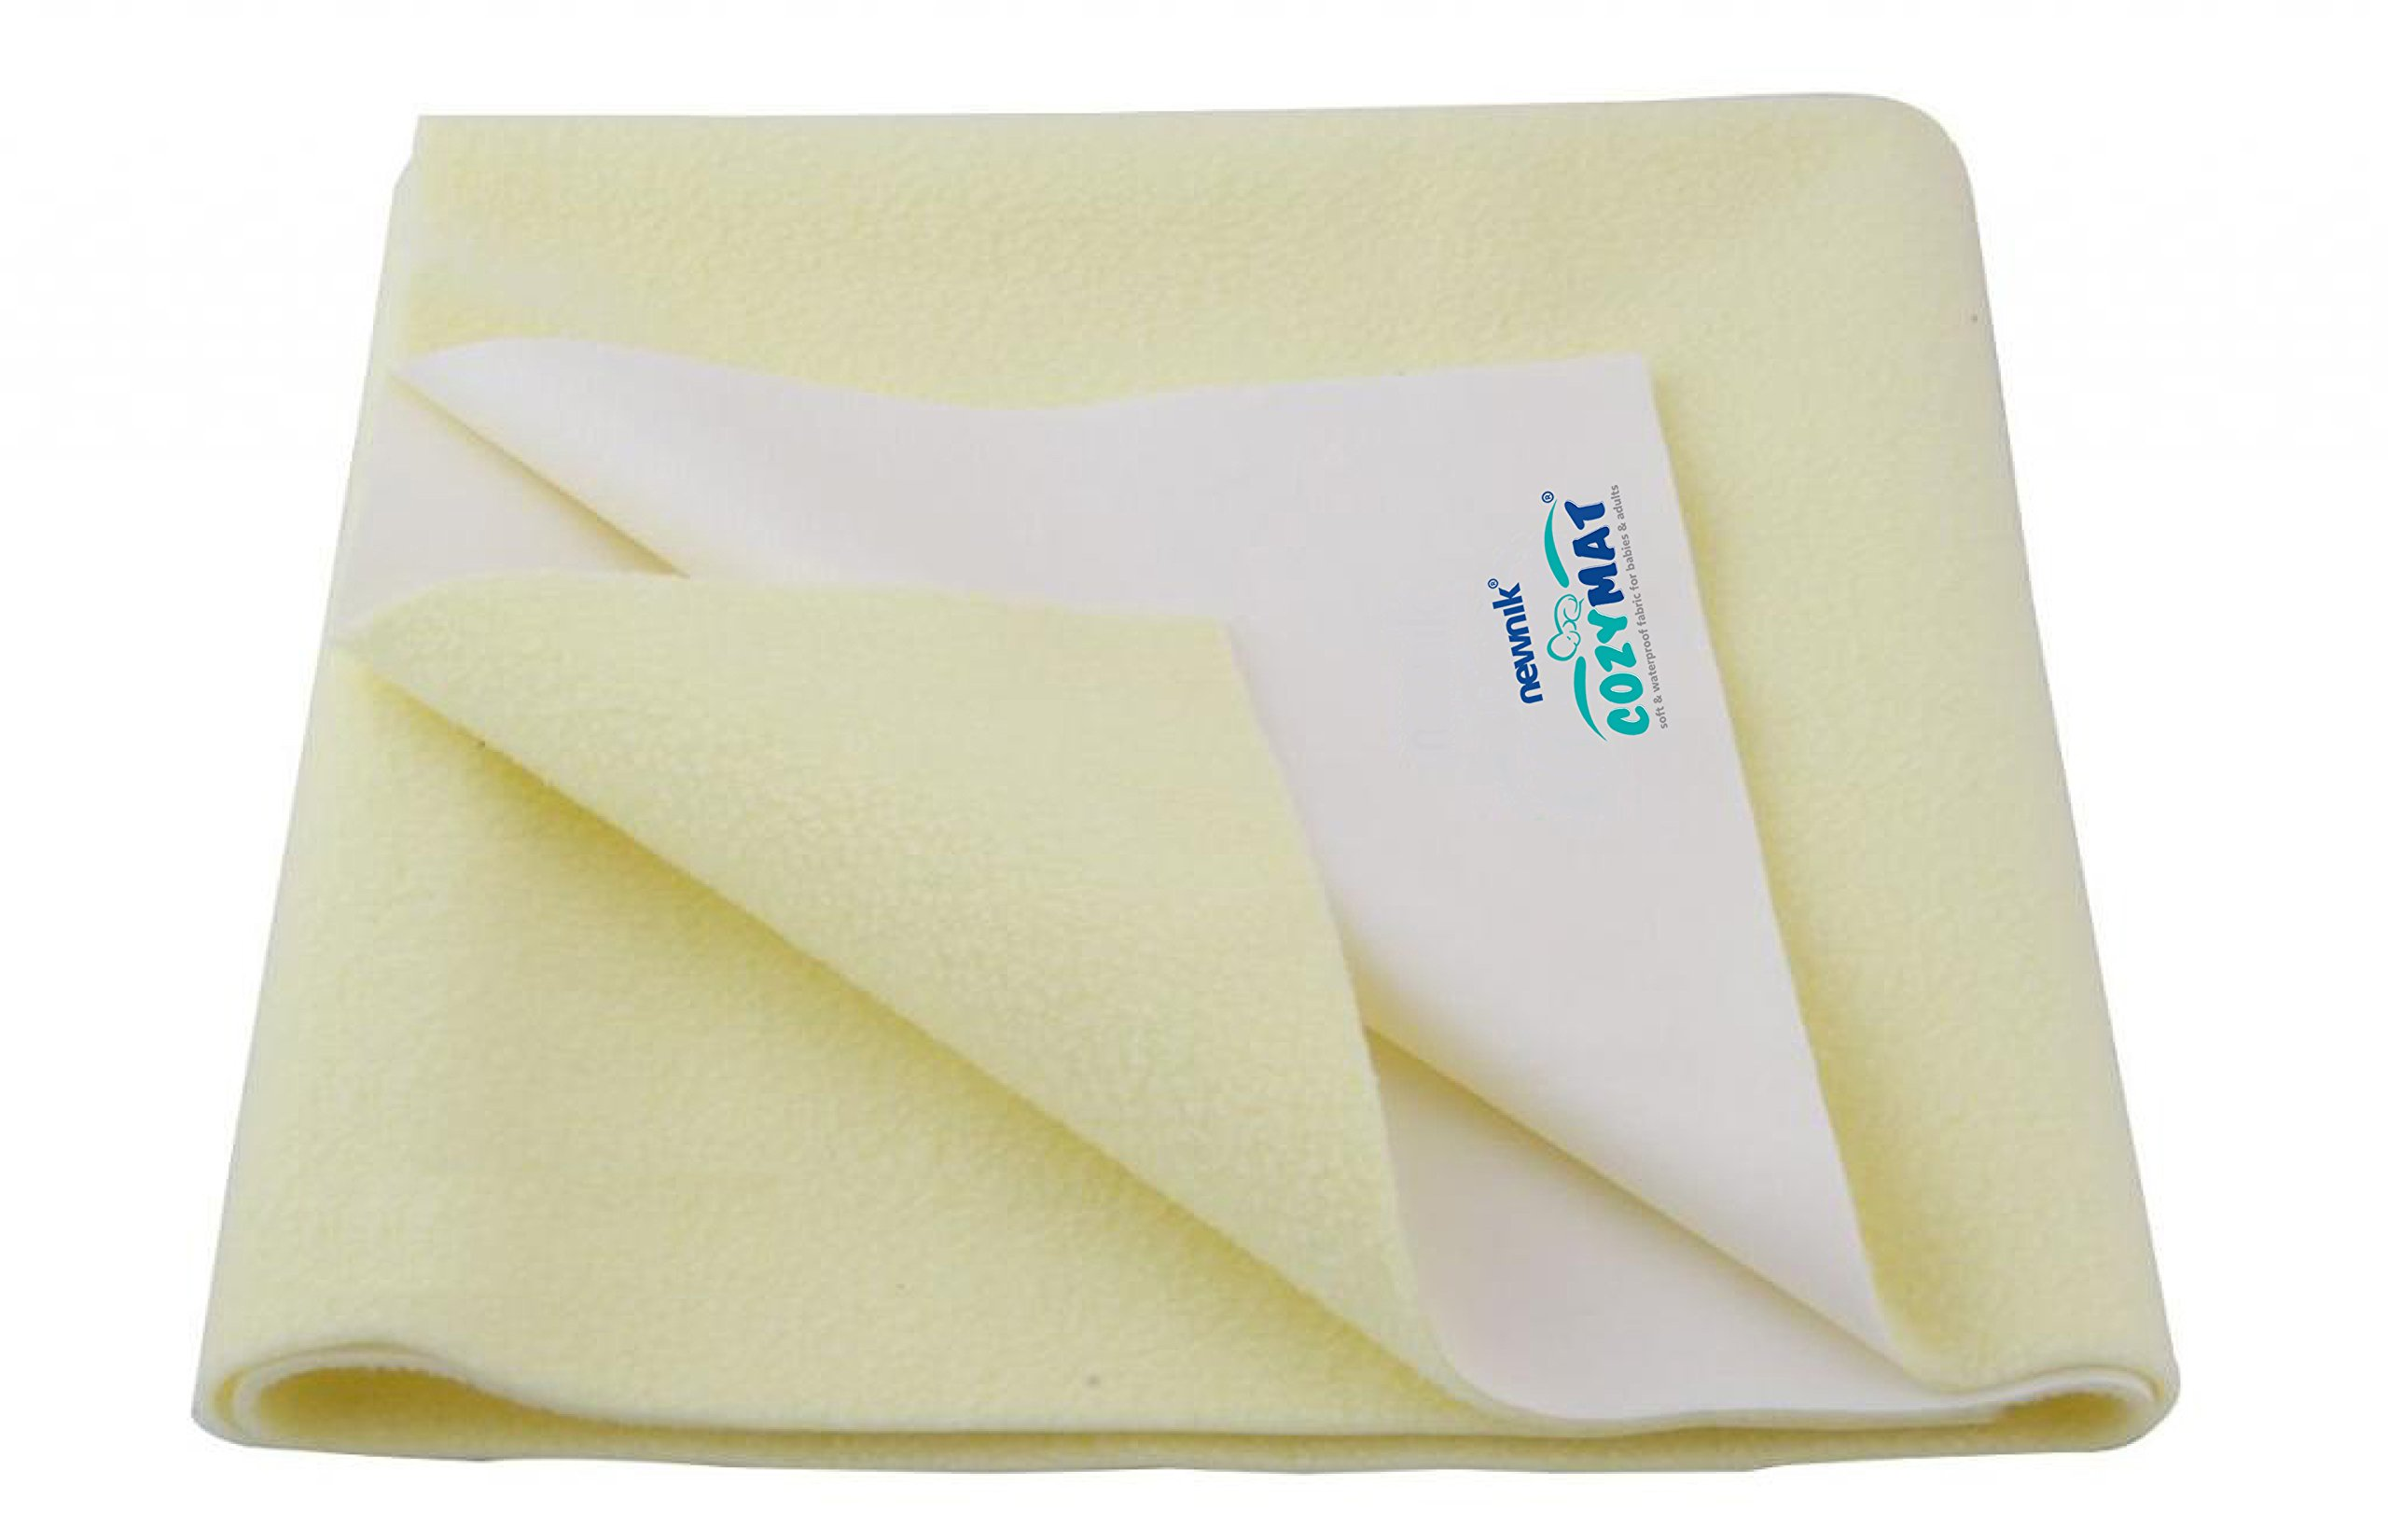 Cozymat Dry Sheet waterproof breathable Bed Protector (Size: 70cm X 100cm) Yellow, Medium